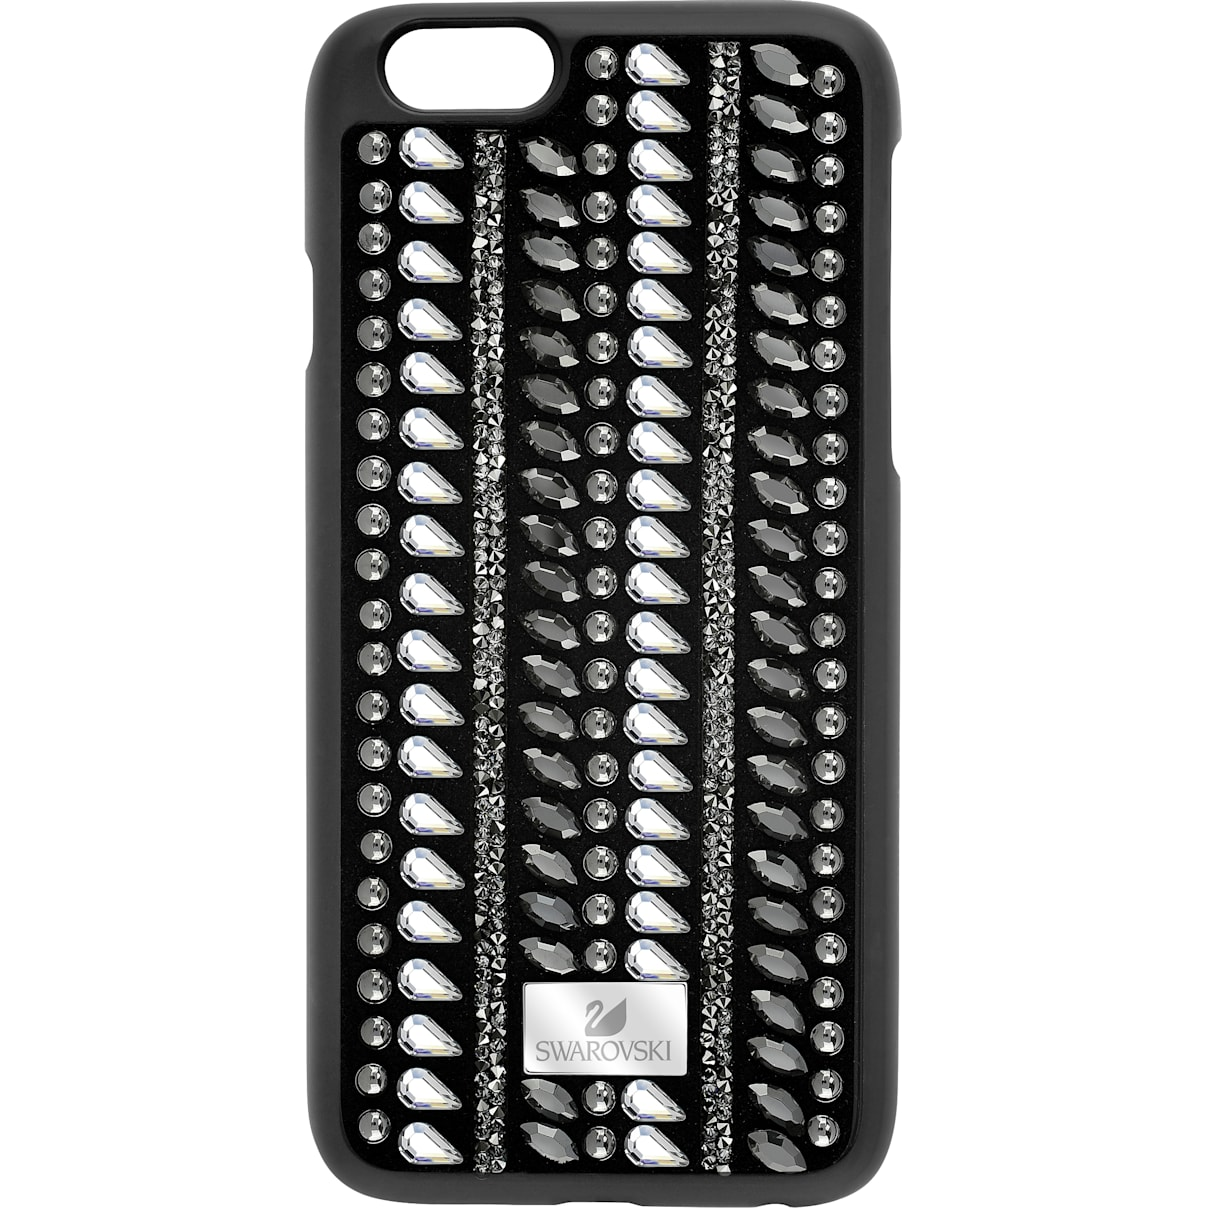 Swarovski Slake Pulse Rock Smartphone Case, iPhone® 7